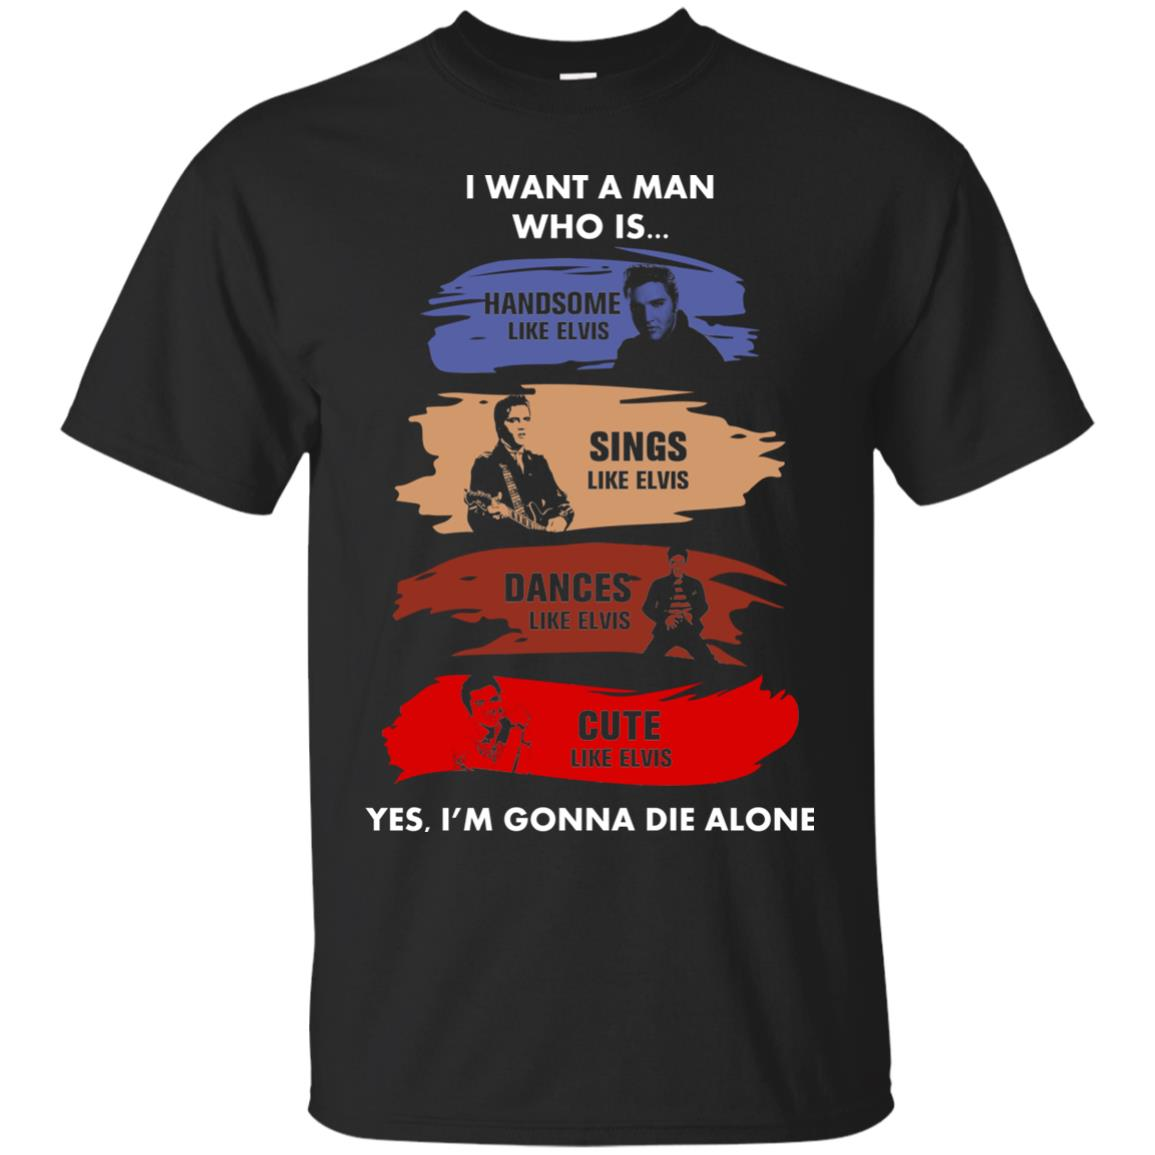 image 568px I want a man who is handsome like Elvis sings like Elvis t shirts, hoodies, tank